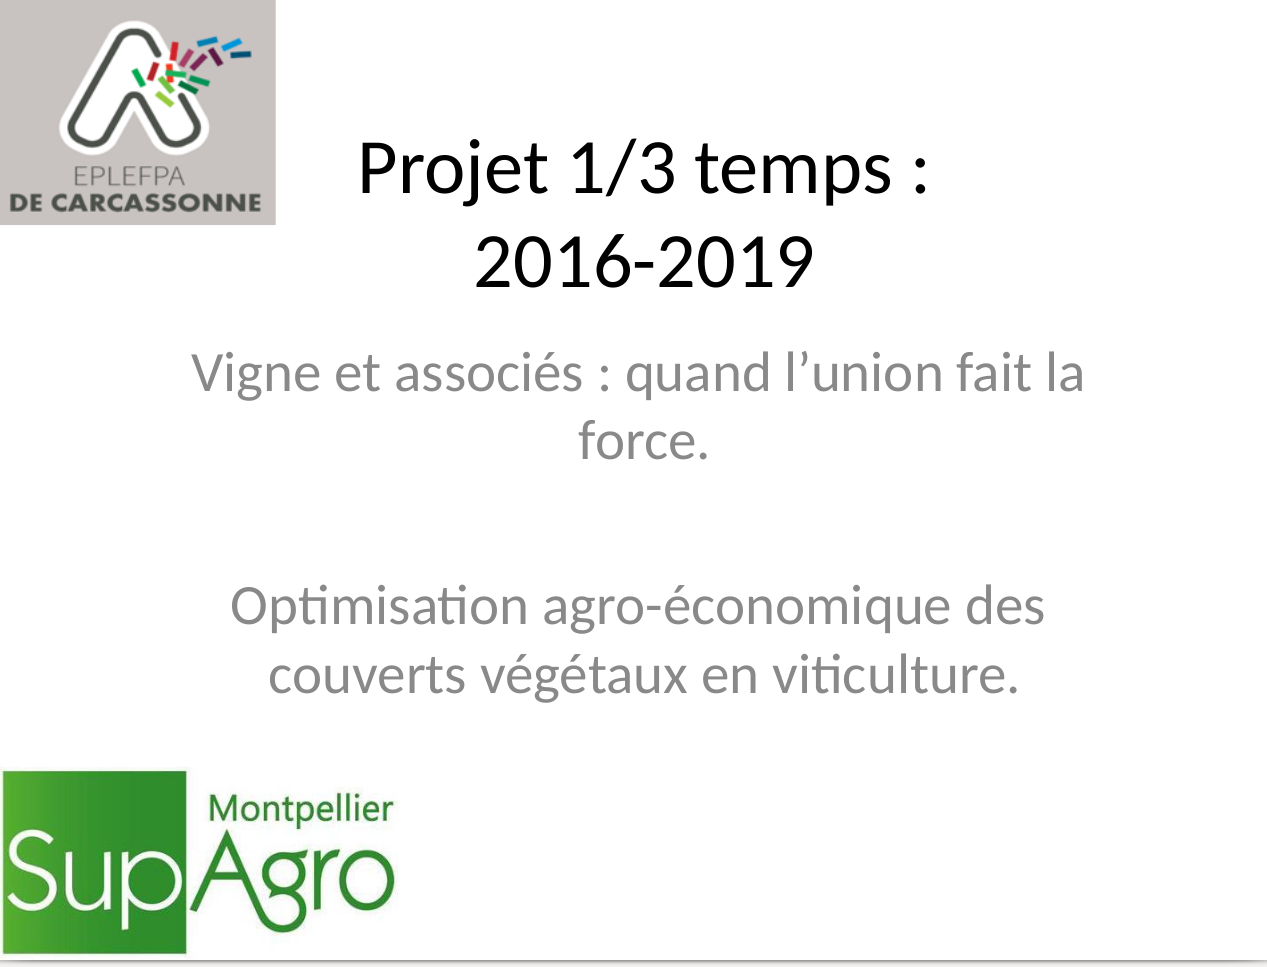 image temoignage_2.png (0.2MB) Lien vers: https://journees-scientifiques.fr/?201809SMO/download&file=201809JSSOL_Temoignage_Carcassonne.pdf